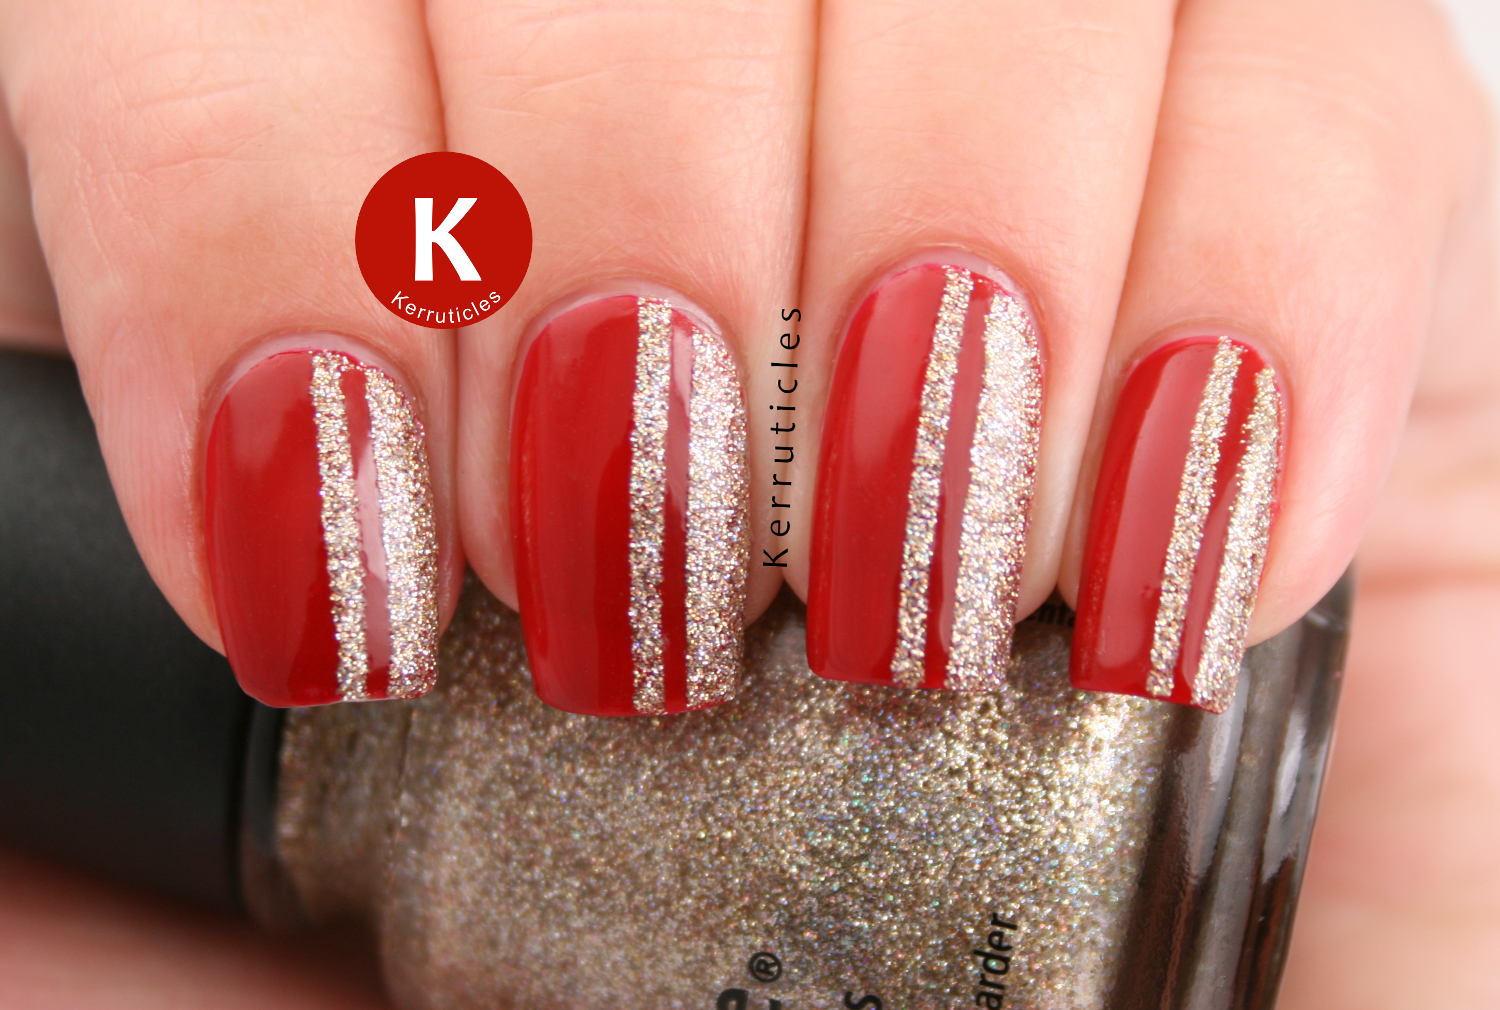 Red with glittery gold stripes | Kerruticles